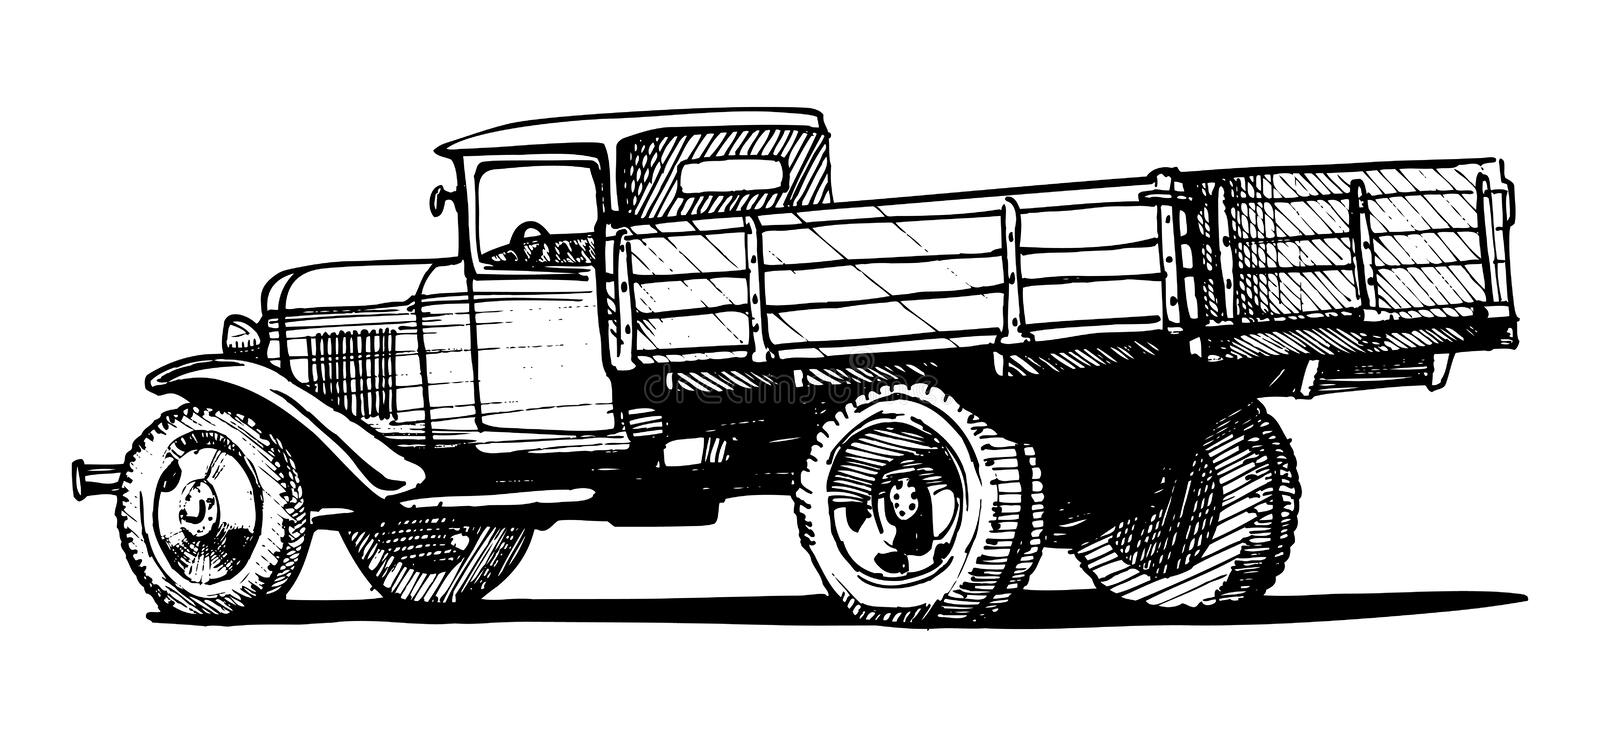 Vintage truck stock vector. Illustration of classic ...